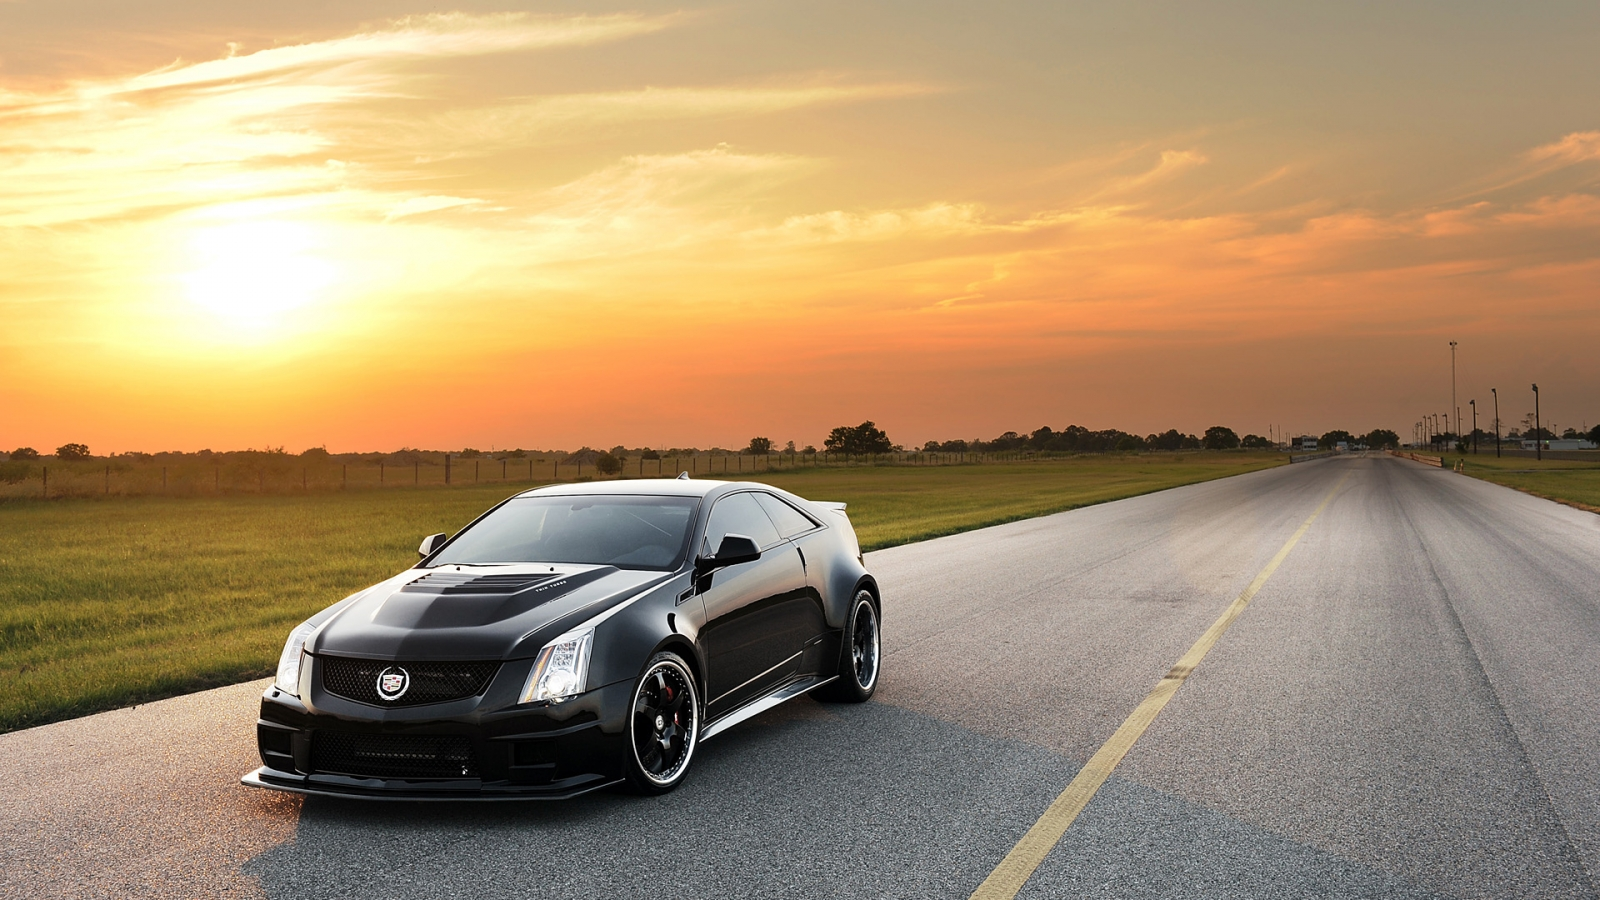 Hennessey Cadillac VR1200 - 1600x900